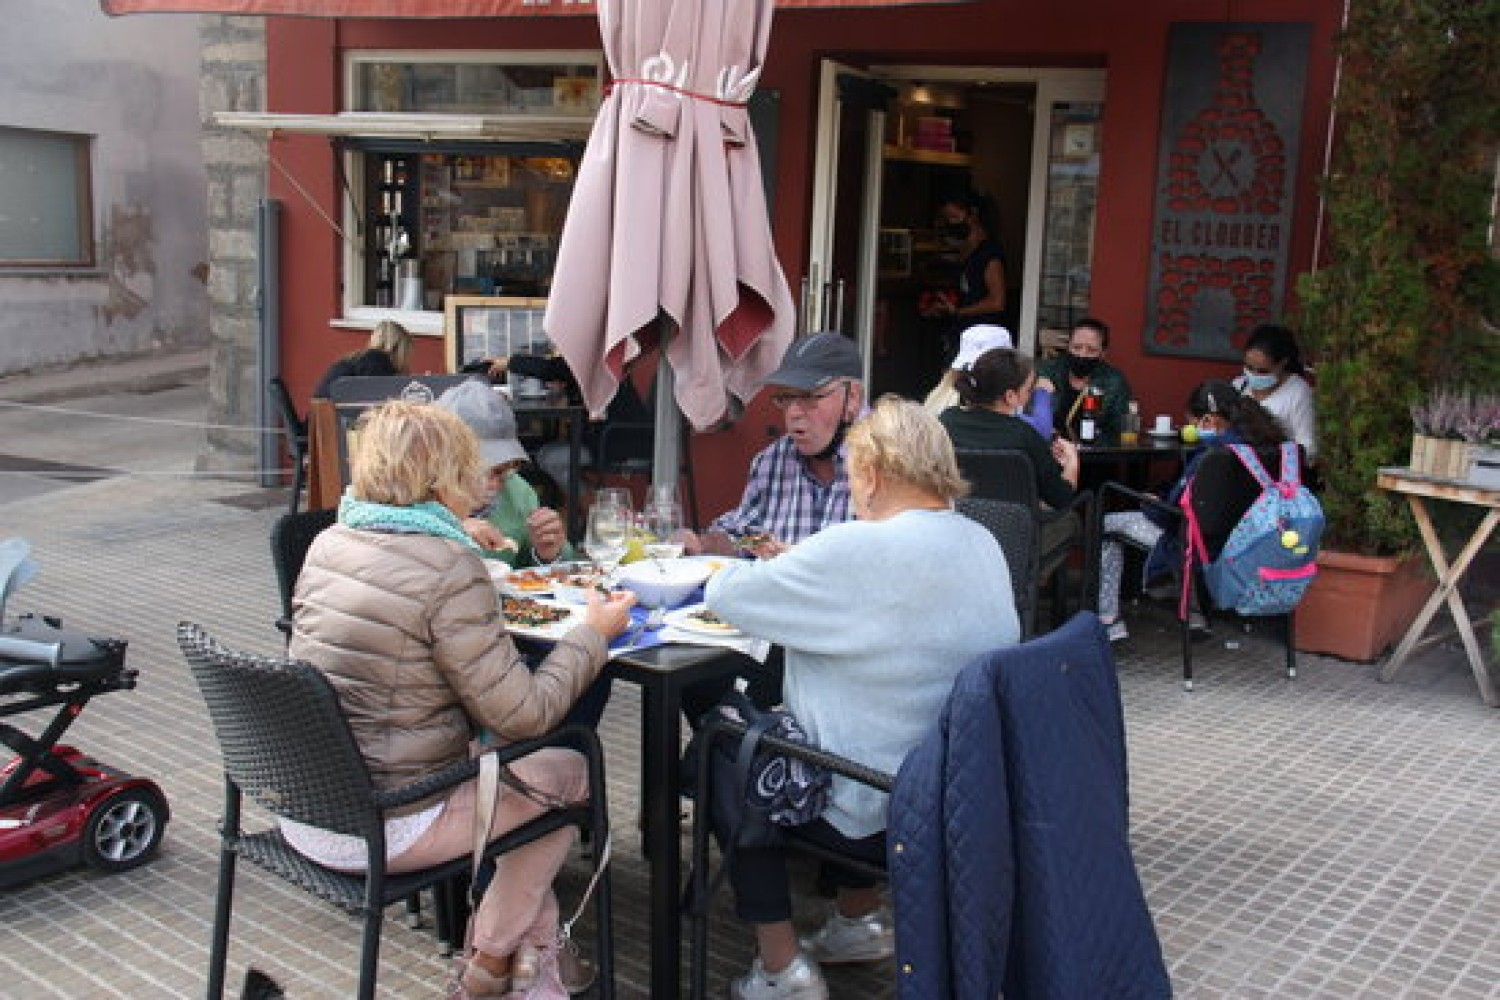 Several people in a bar terrace in Puigcerdà, on September 23, 2020 (by Albert Lijarcio)